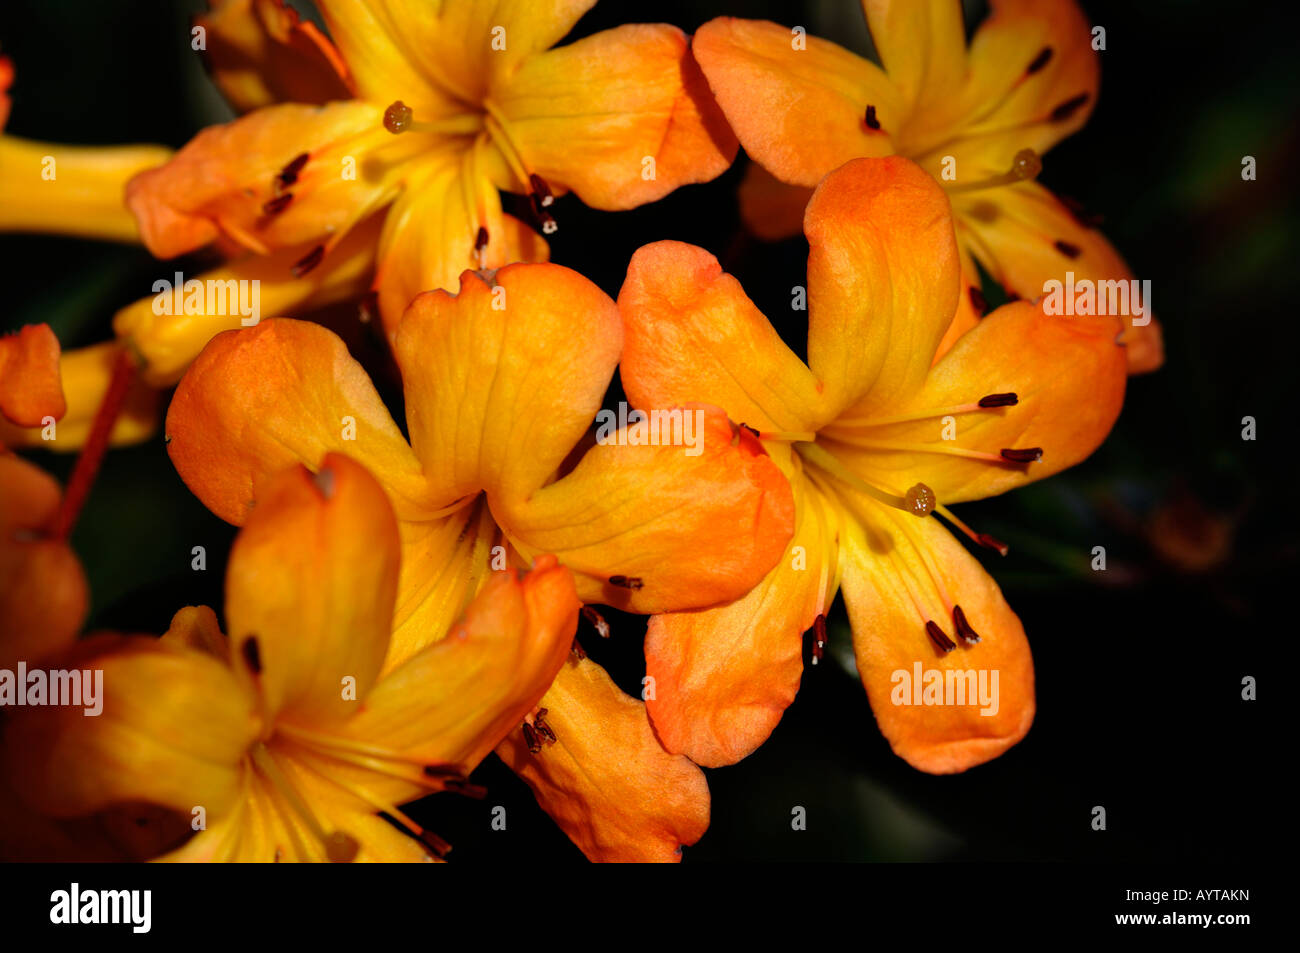 Rhododendron sunny orange flowers lepidote bushy half hardy rhododendron sunny orange flowers lepidote bushy half hardy perennial evergreen shrub blooming flowering plant blossom mightylinksfo